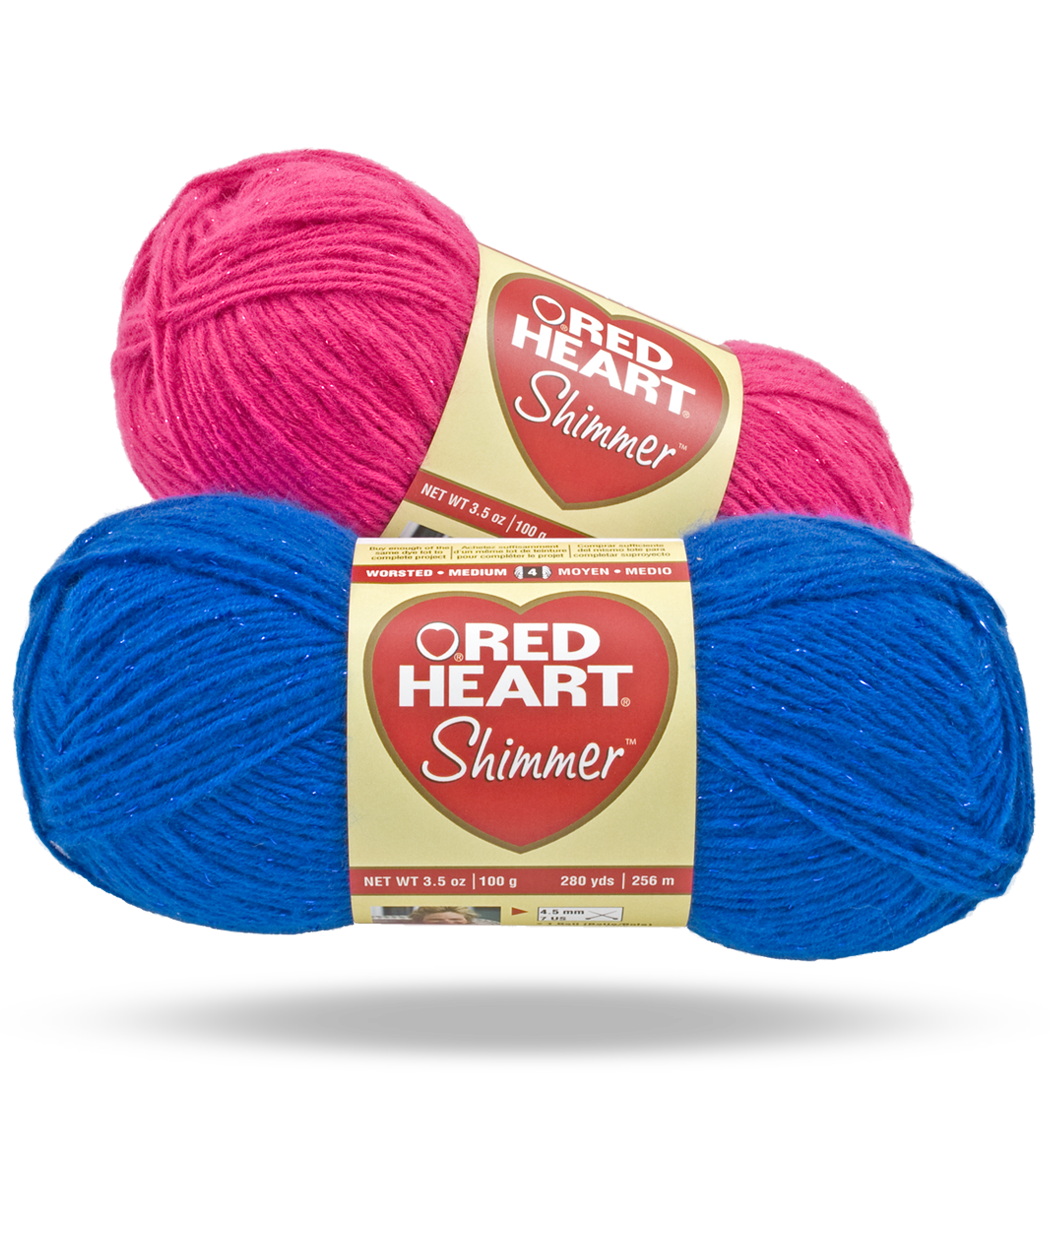 Shimmer | red heart yarn | Pinterest